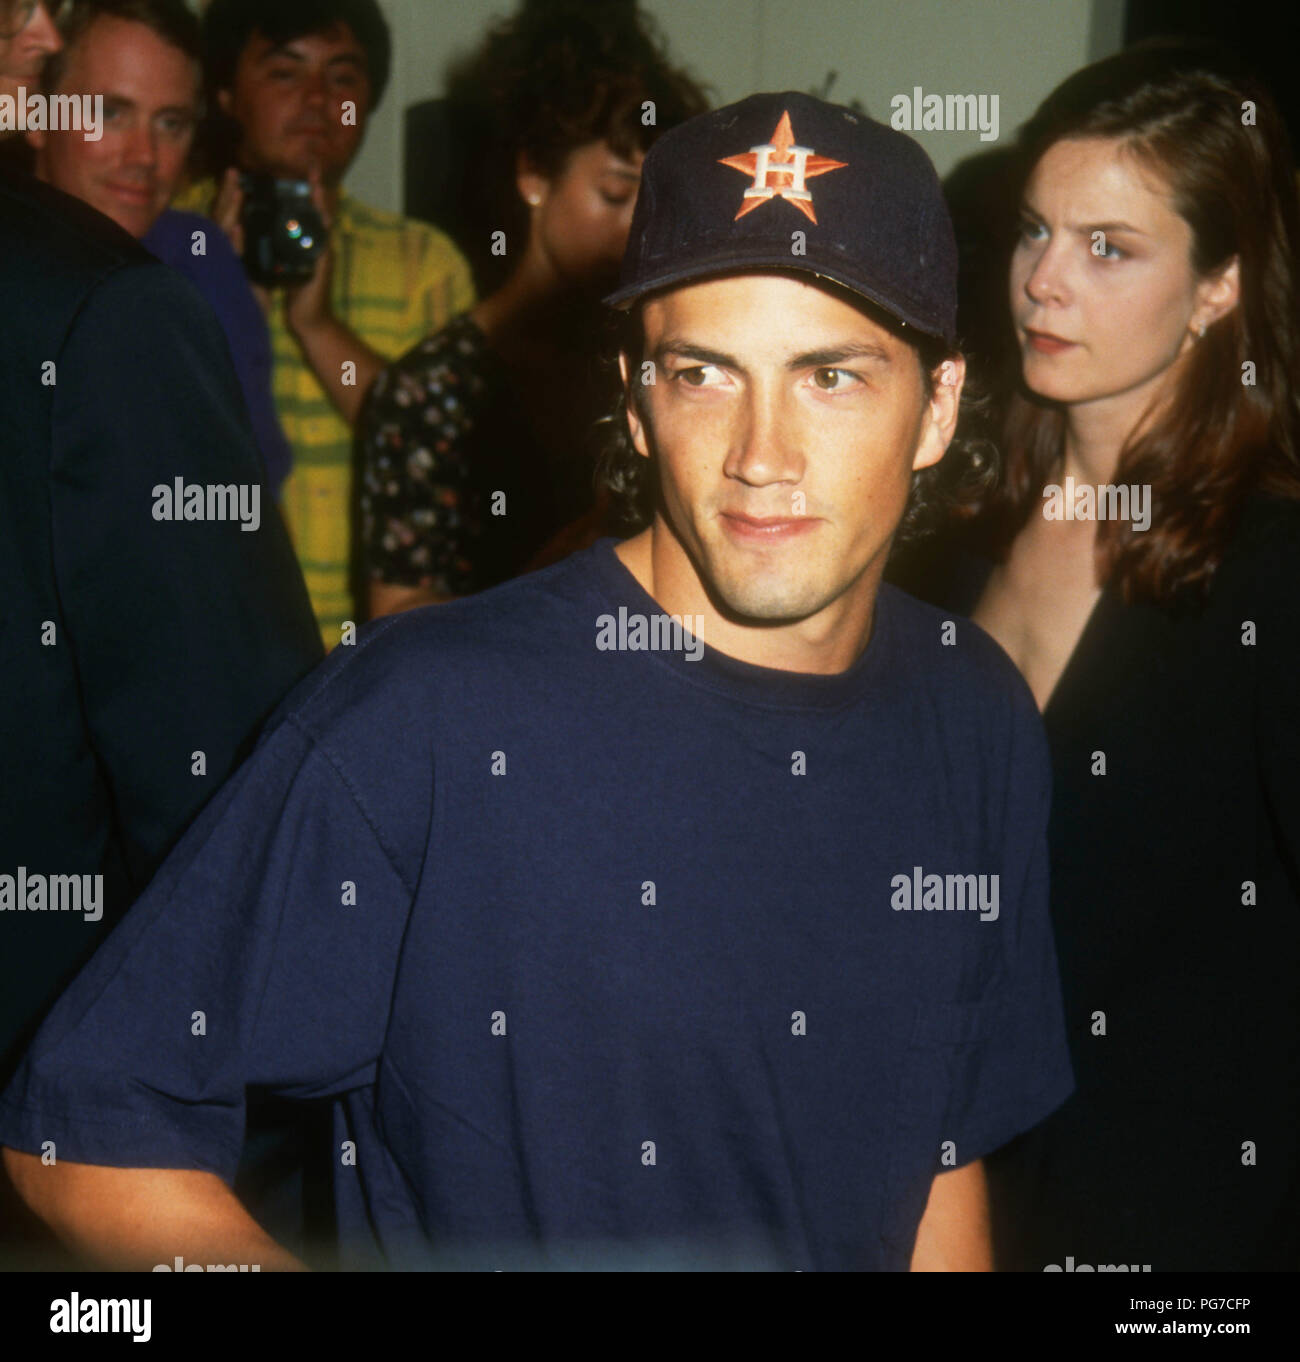 WESTWOOD, CA - AUGUST 03: Actor Andrew Shue attends Warner Bros. Pictures 'Unforgiven' Westwood Premiere on August 3, 1992 at Mann's Bruin Theatre in Westwood, California. Photo by Barry King/Alamy Stock Photo - Stock Image